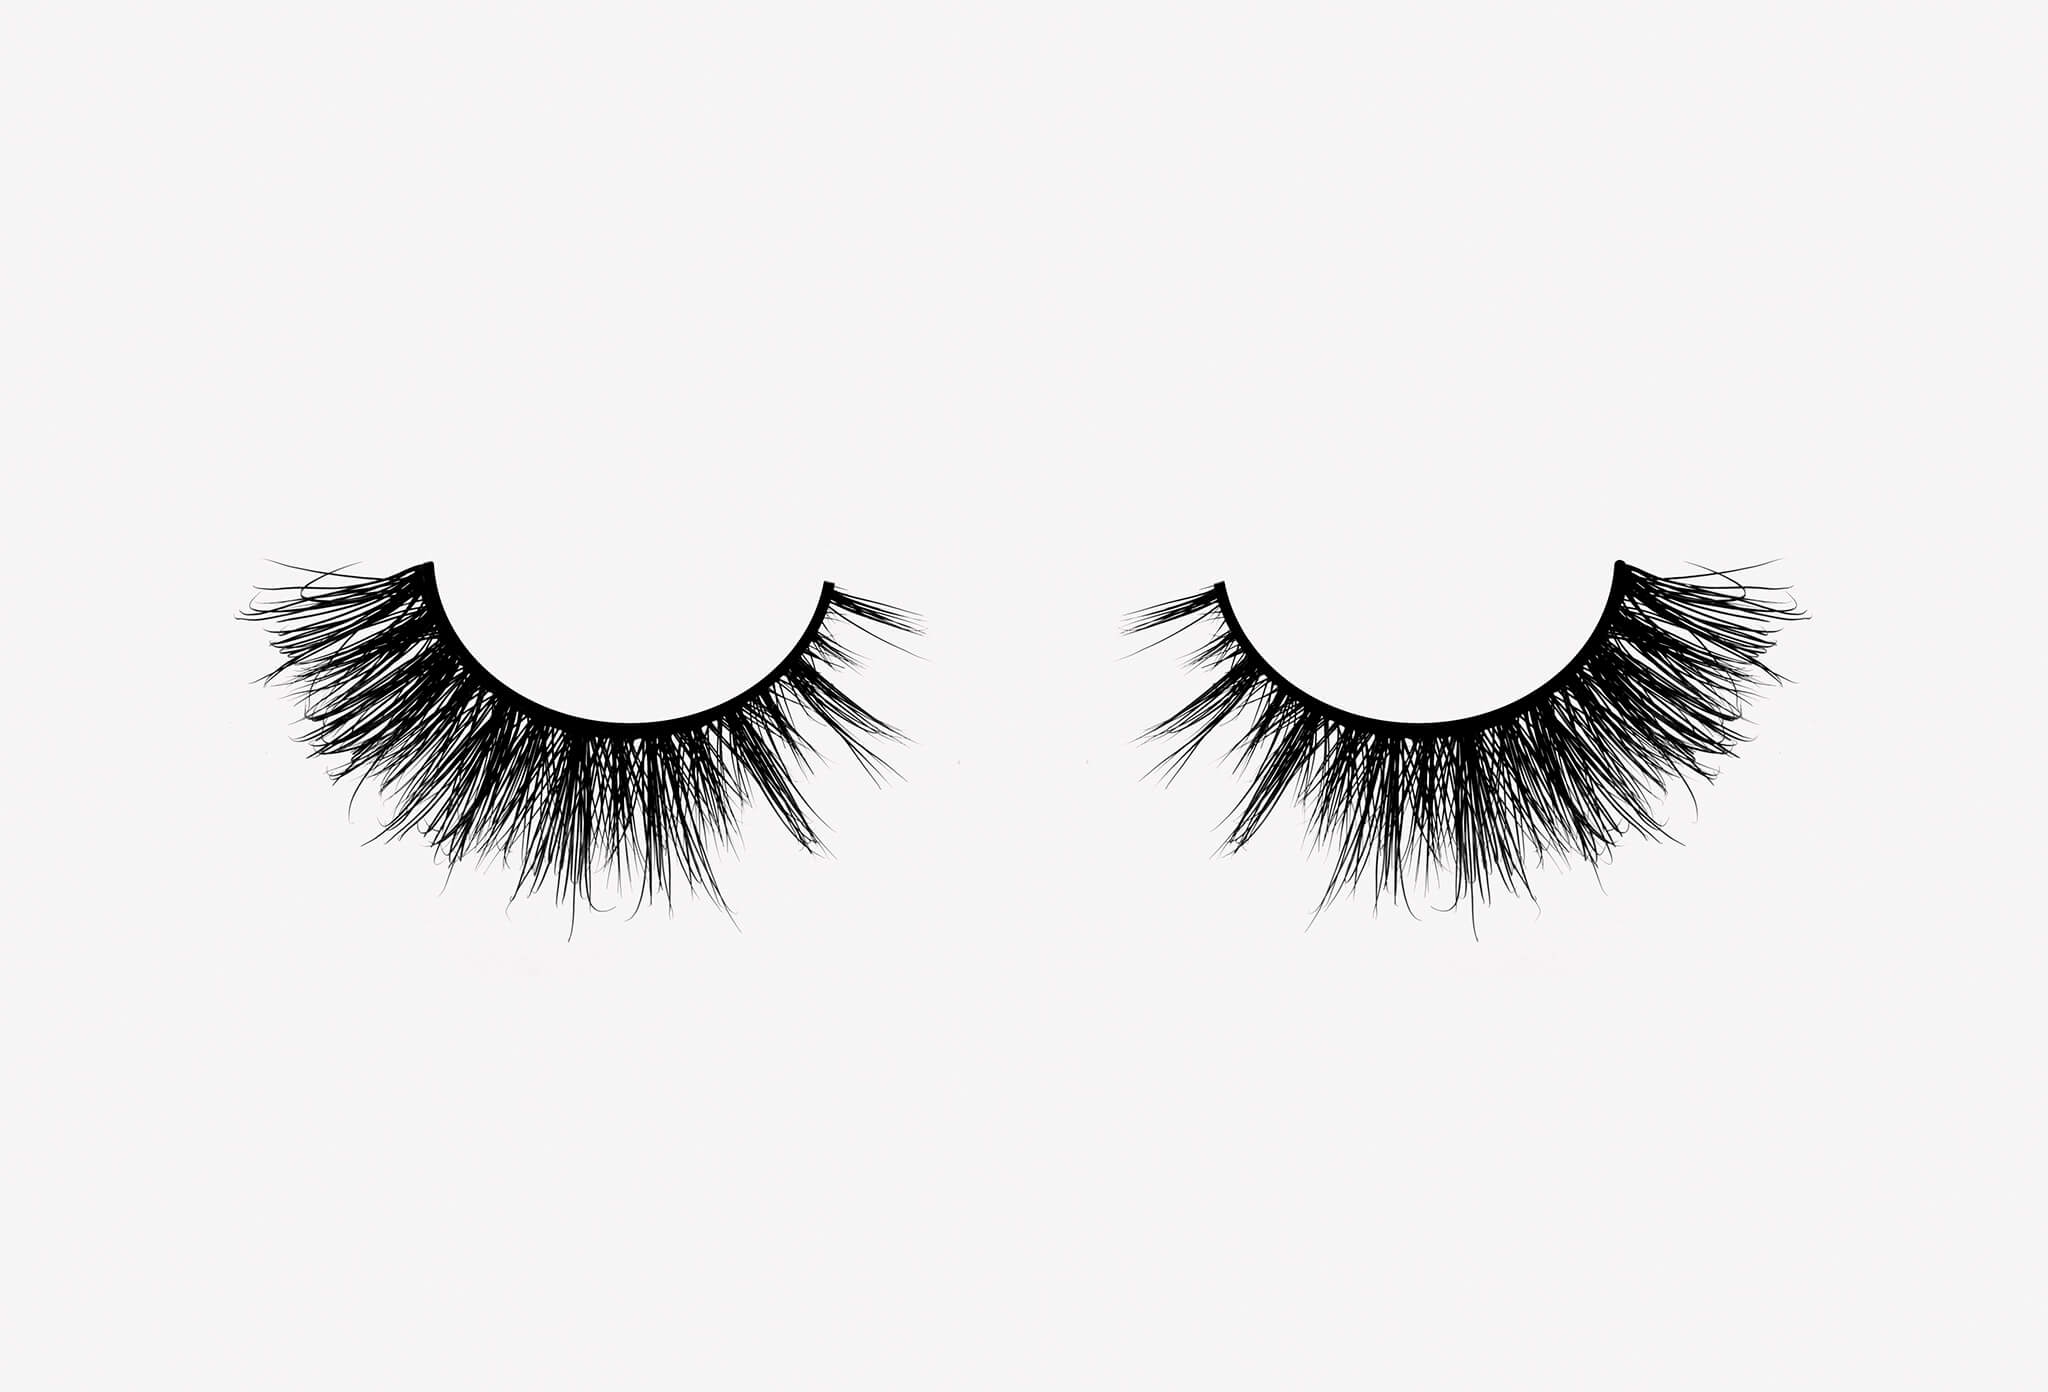 #WINGing Mink Lashes by velour lashes #3